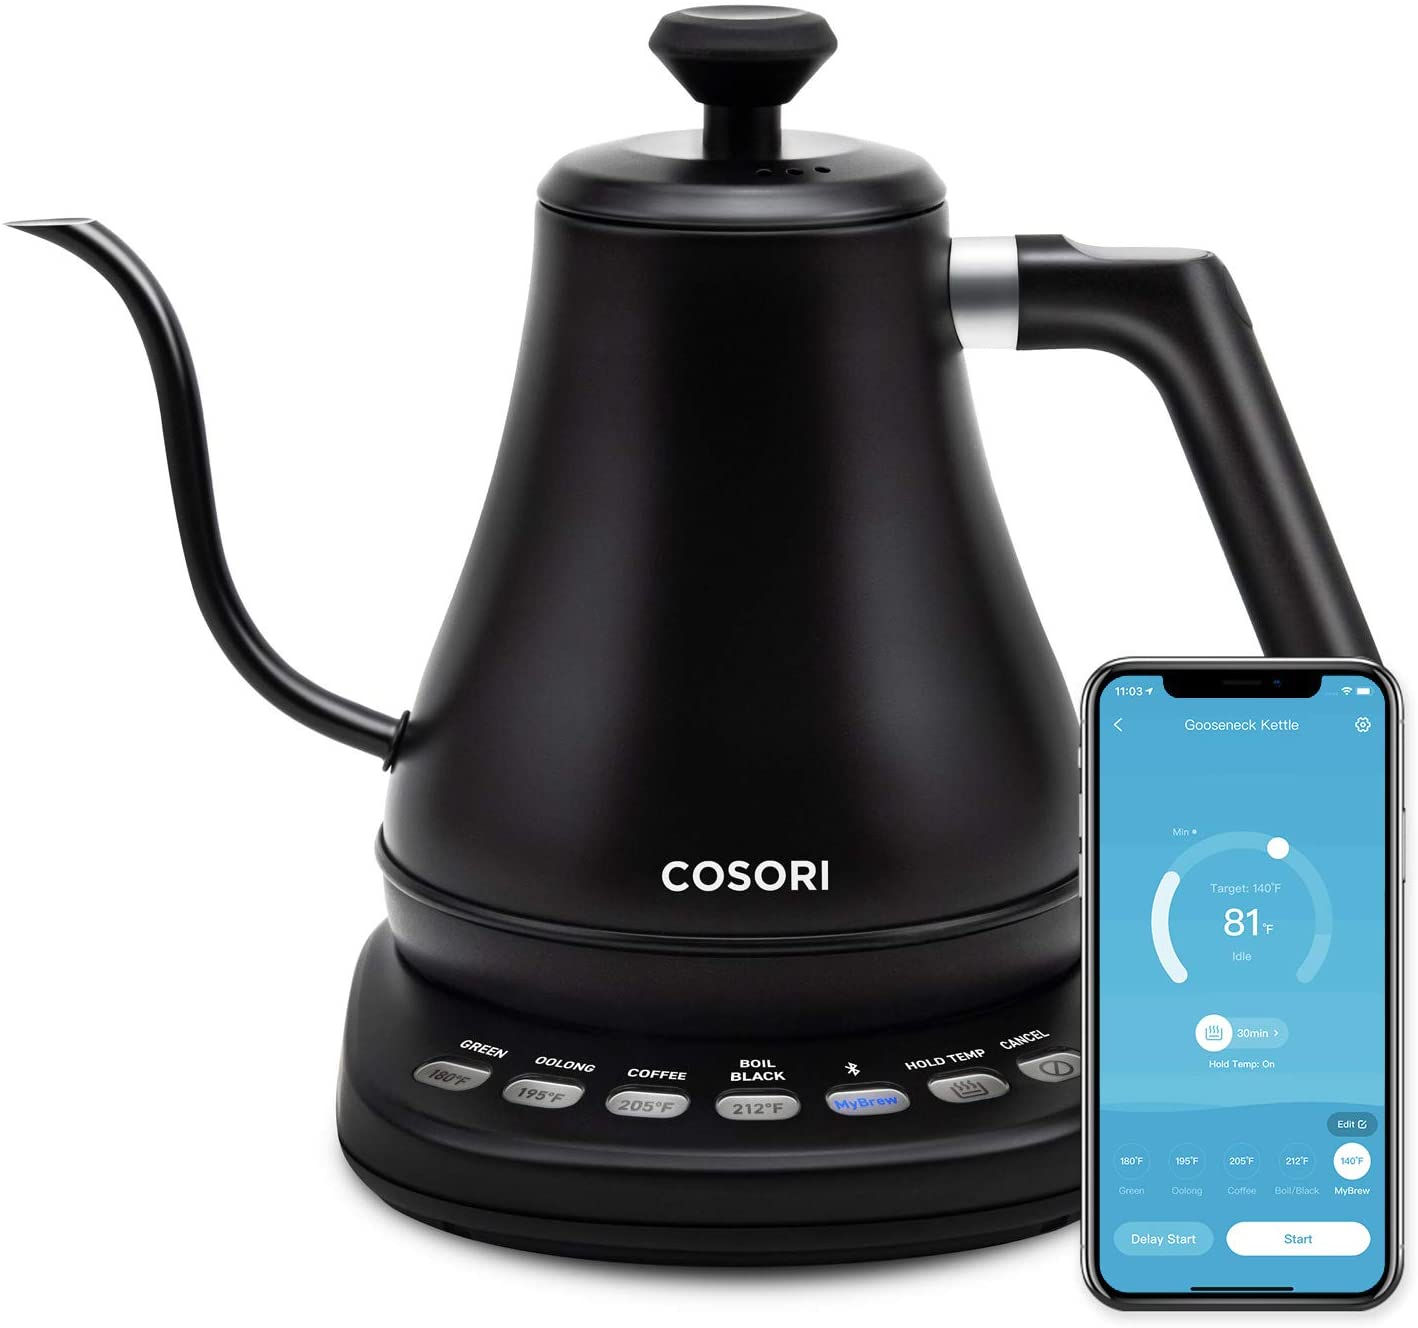 COSORI Electric Gooseneck Smart Bluetooth with Variable Temperature Control Pour Over Coffee Kettle & Tea Kettle, 100% Stainless Steel Inner Lid & Bottom, Quick Heating, 0.8L, Black: Kitchen & Dining